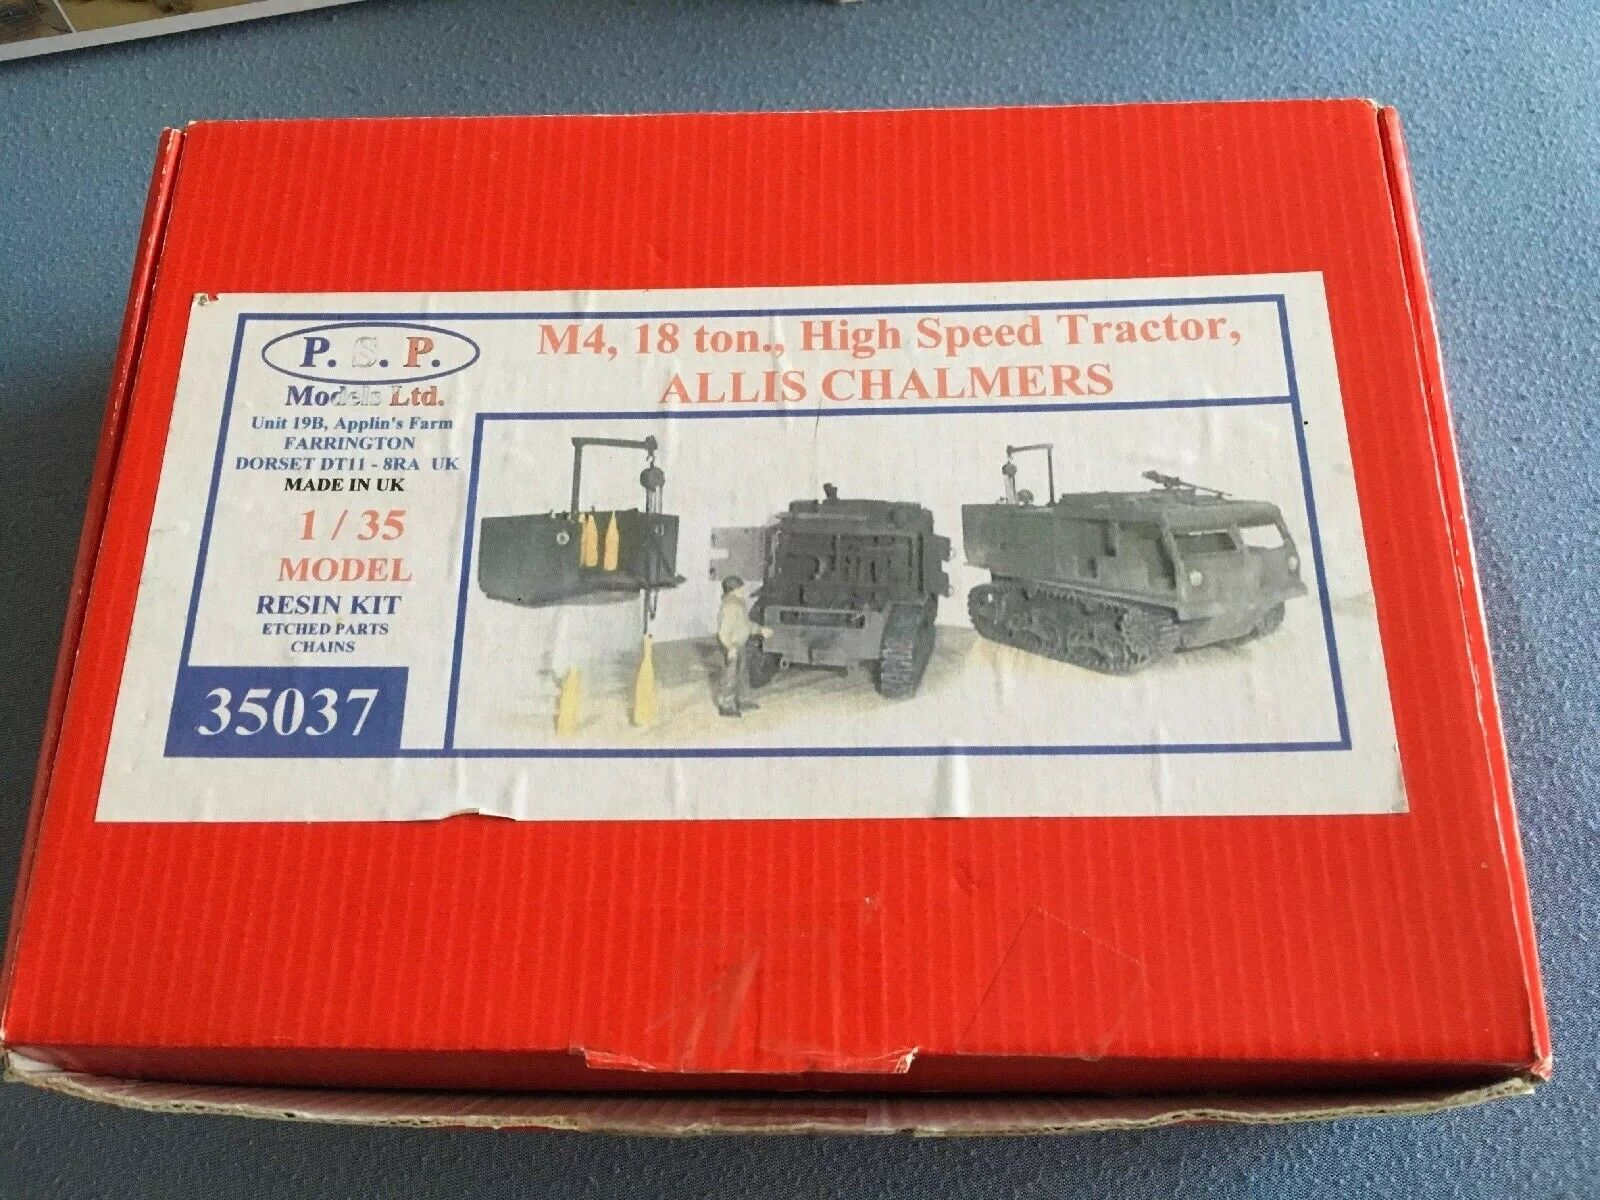 M4 18 Ton.,High Speed Tractor,Allis Chalmers Resin Kit